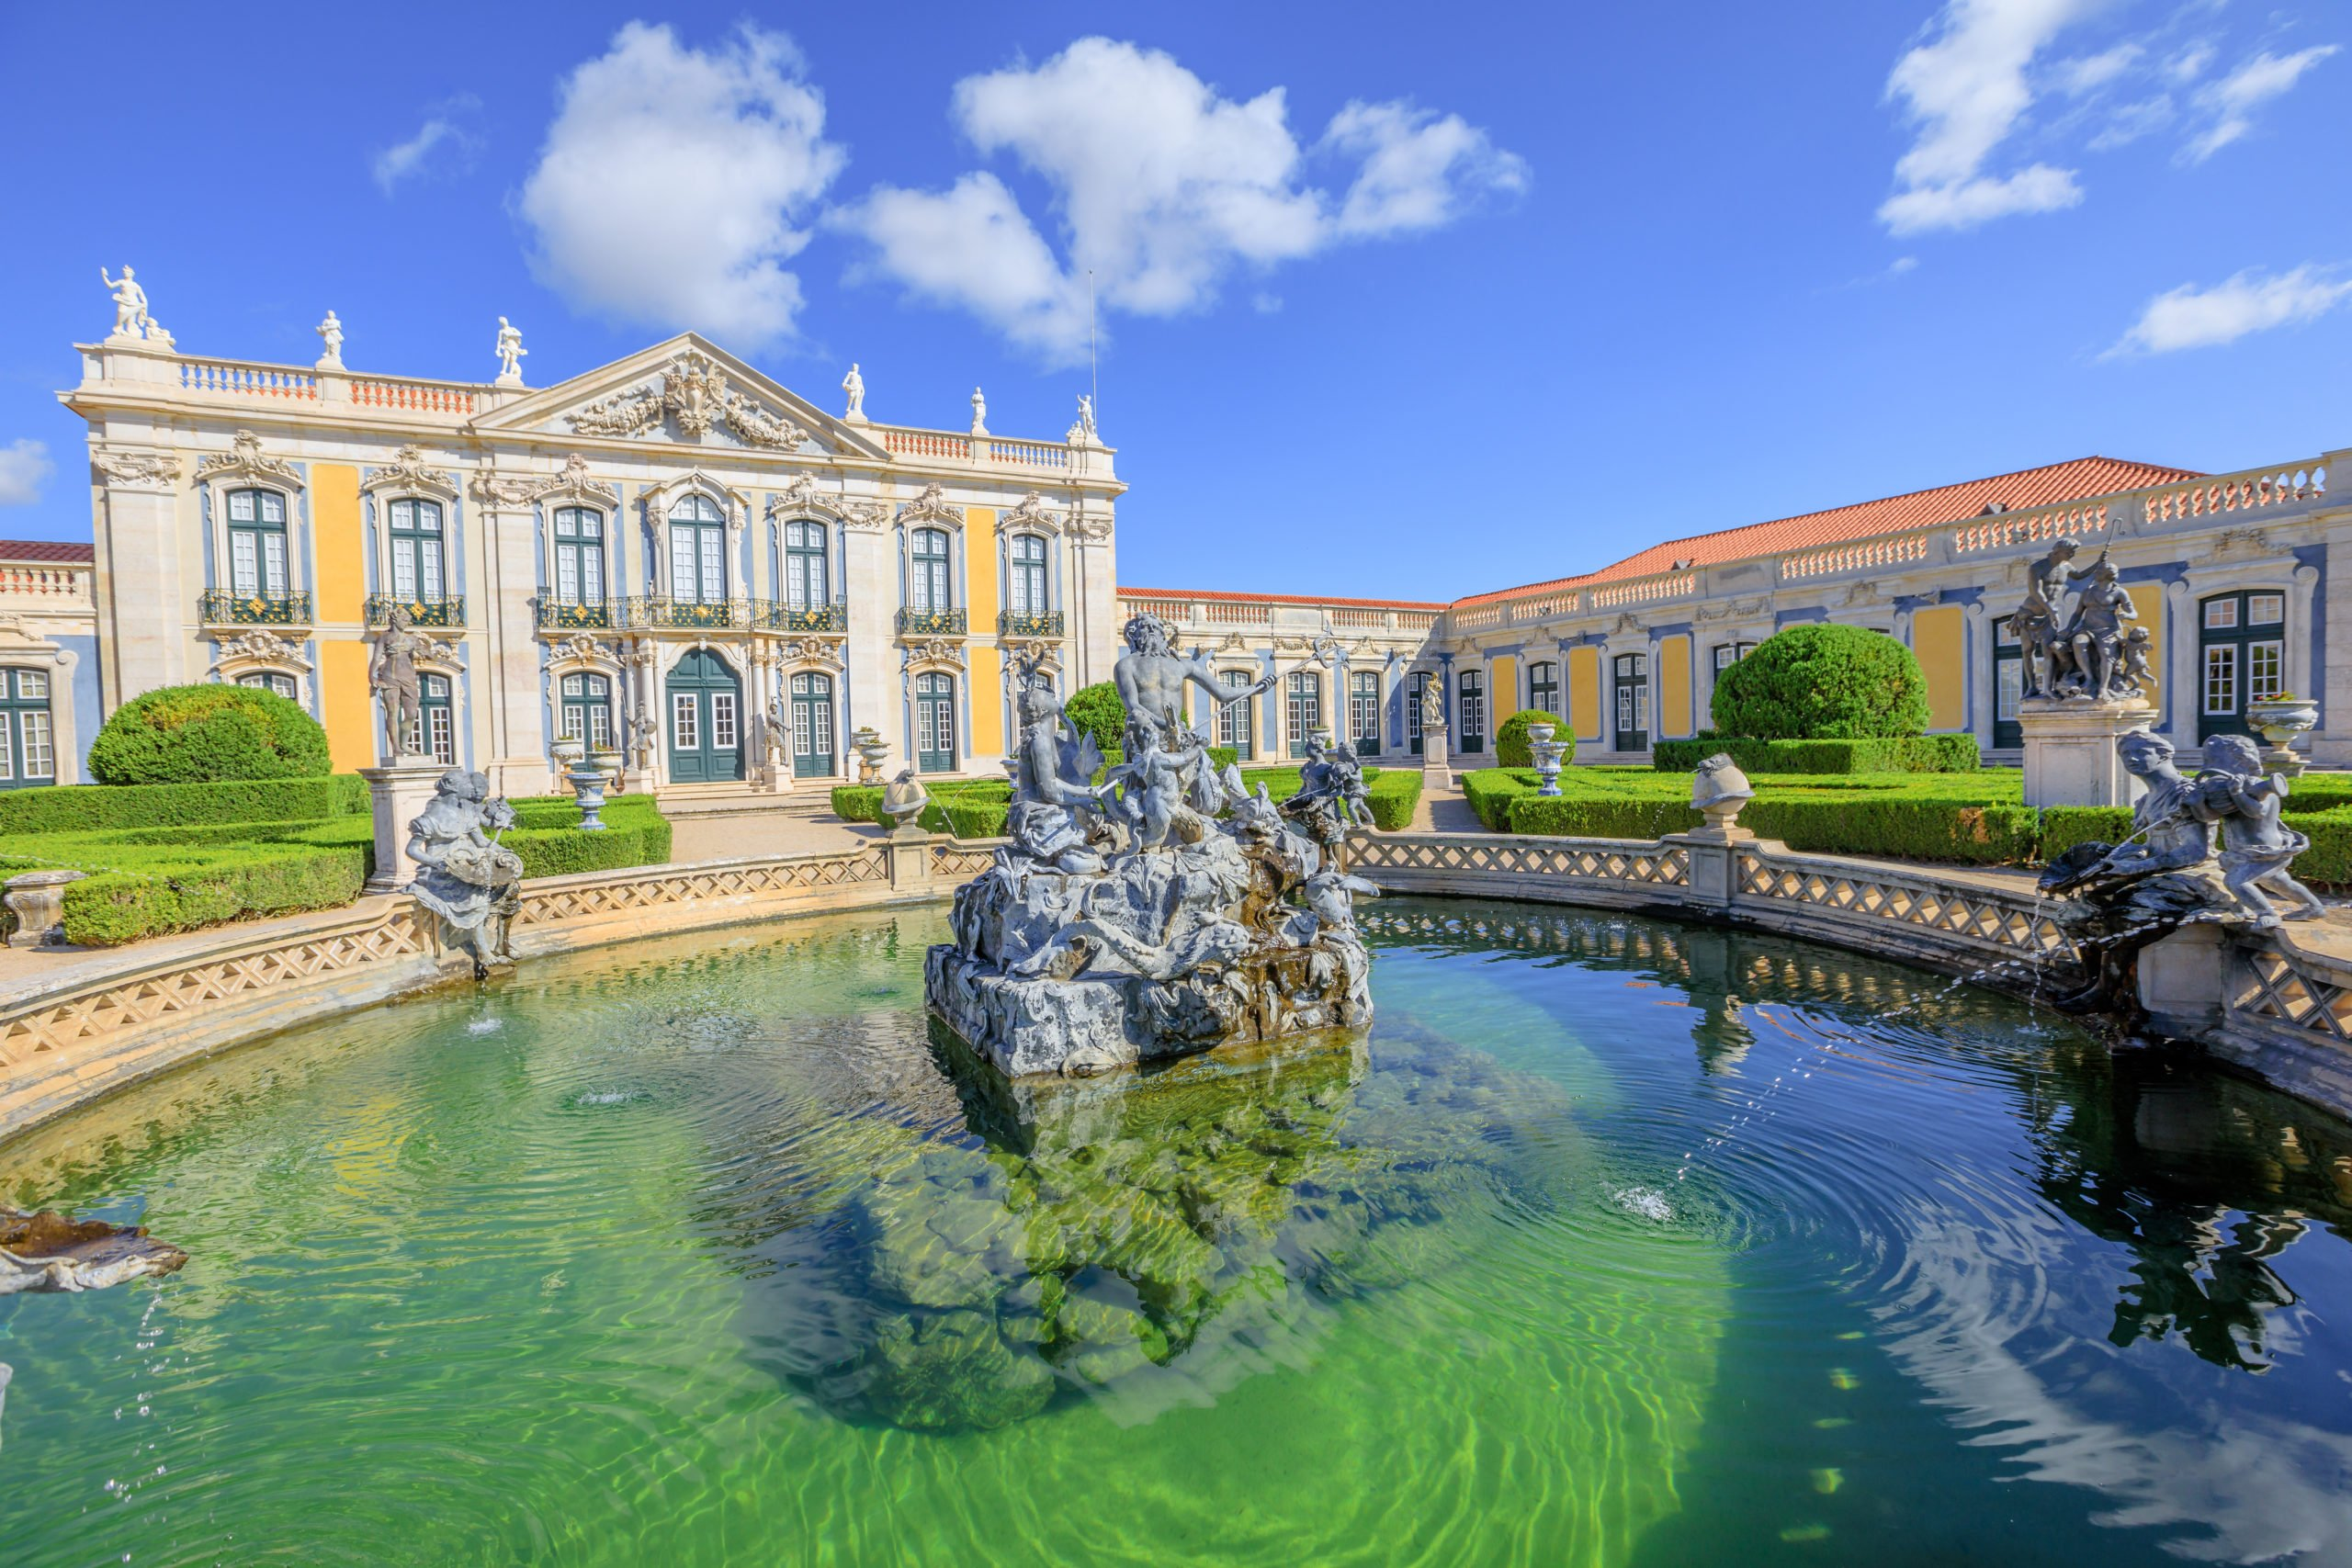 Learn More About The National Palace In Sintra On The Highlights Of Portugal 11 Day Package Tour